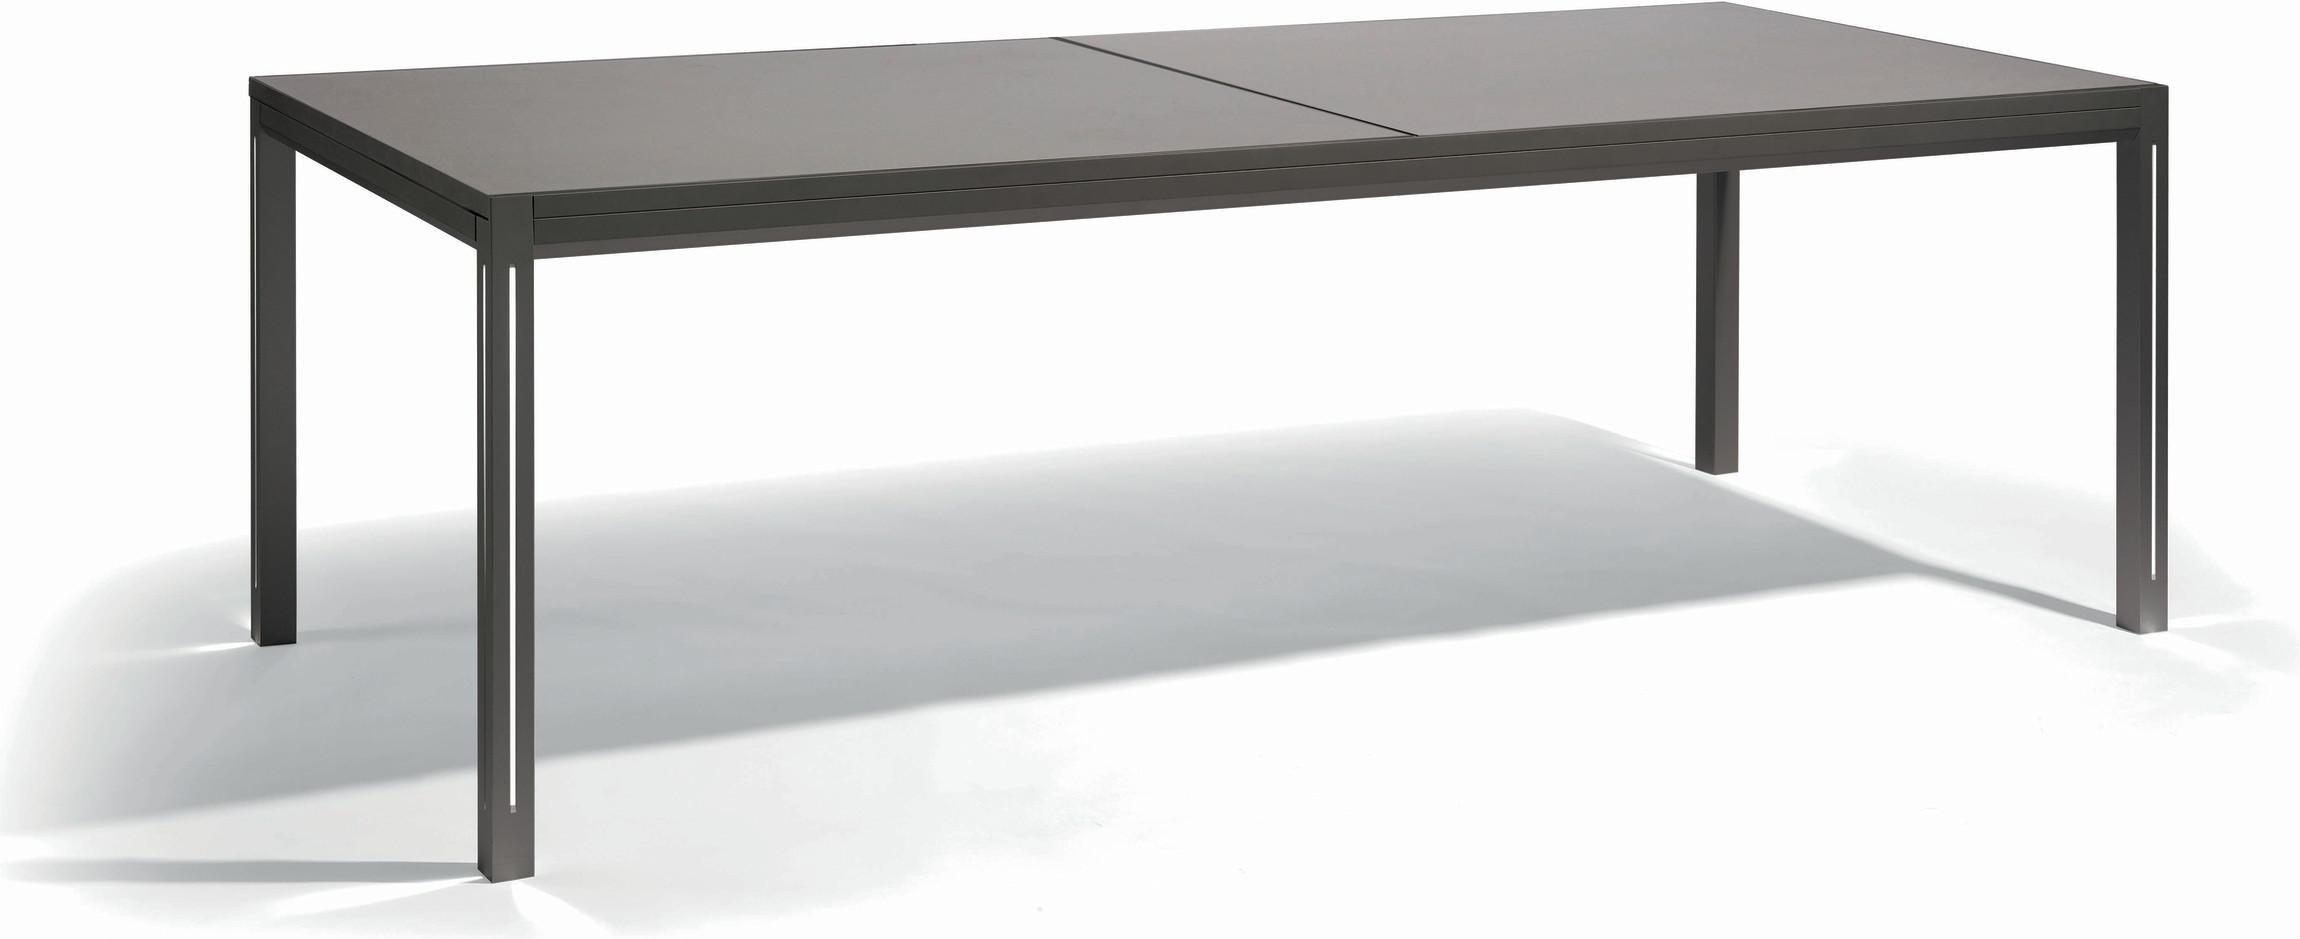 Luna Dining table - lava - CQ 360 - LED